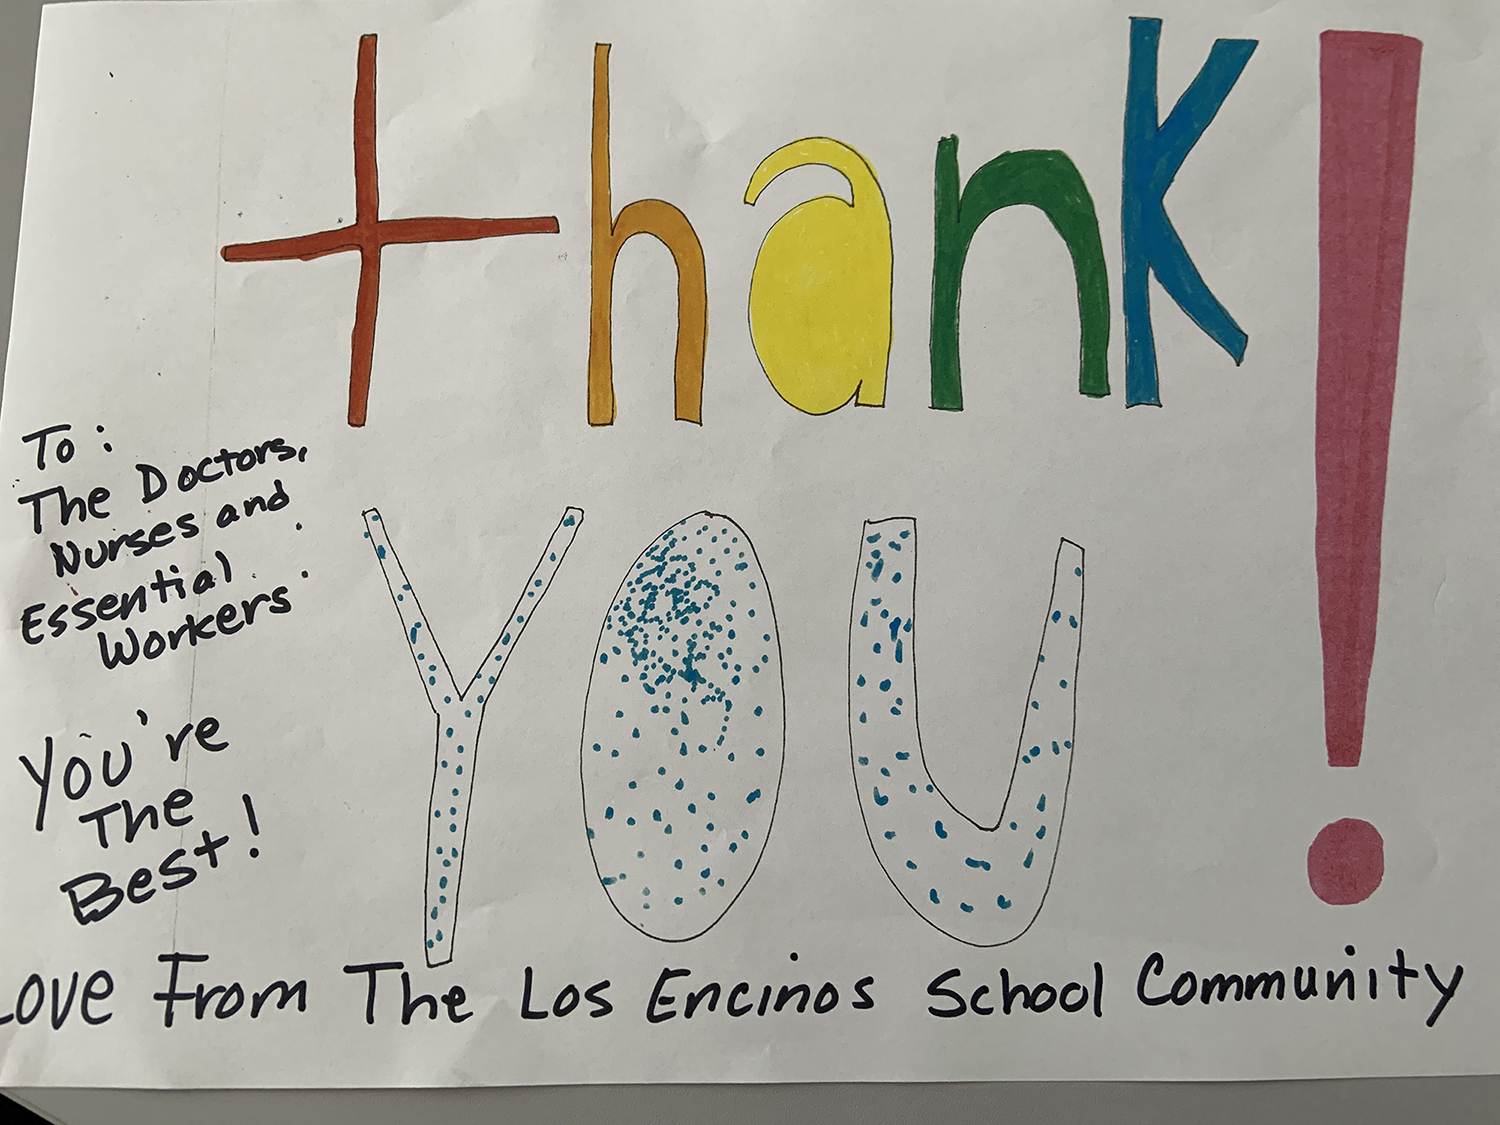 Photo: Thank You Essential Workers poster